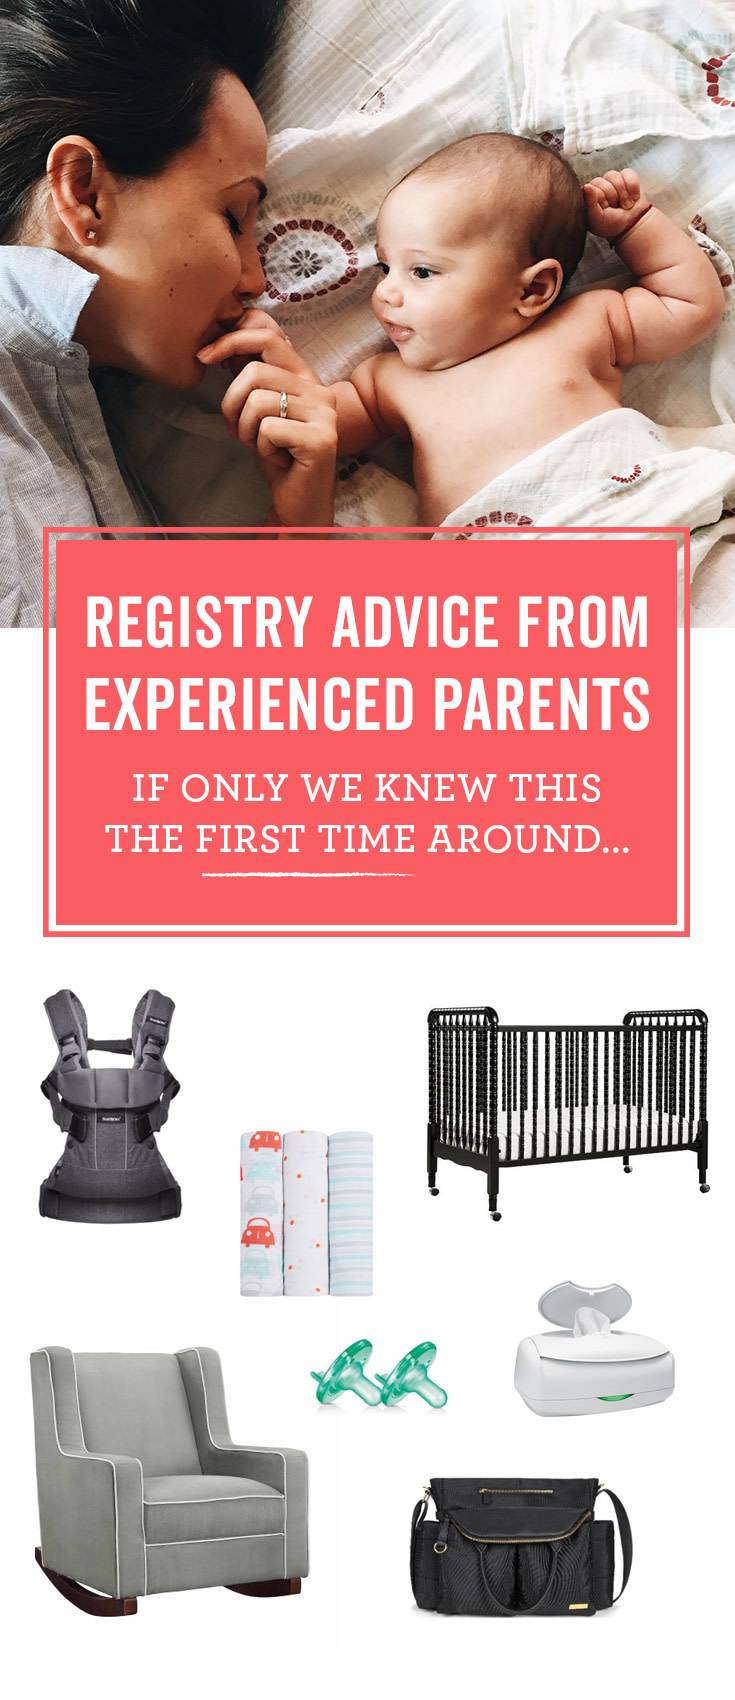 There's a lot of advice on what to add to your baby registry. These tips come from parents who've been there.